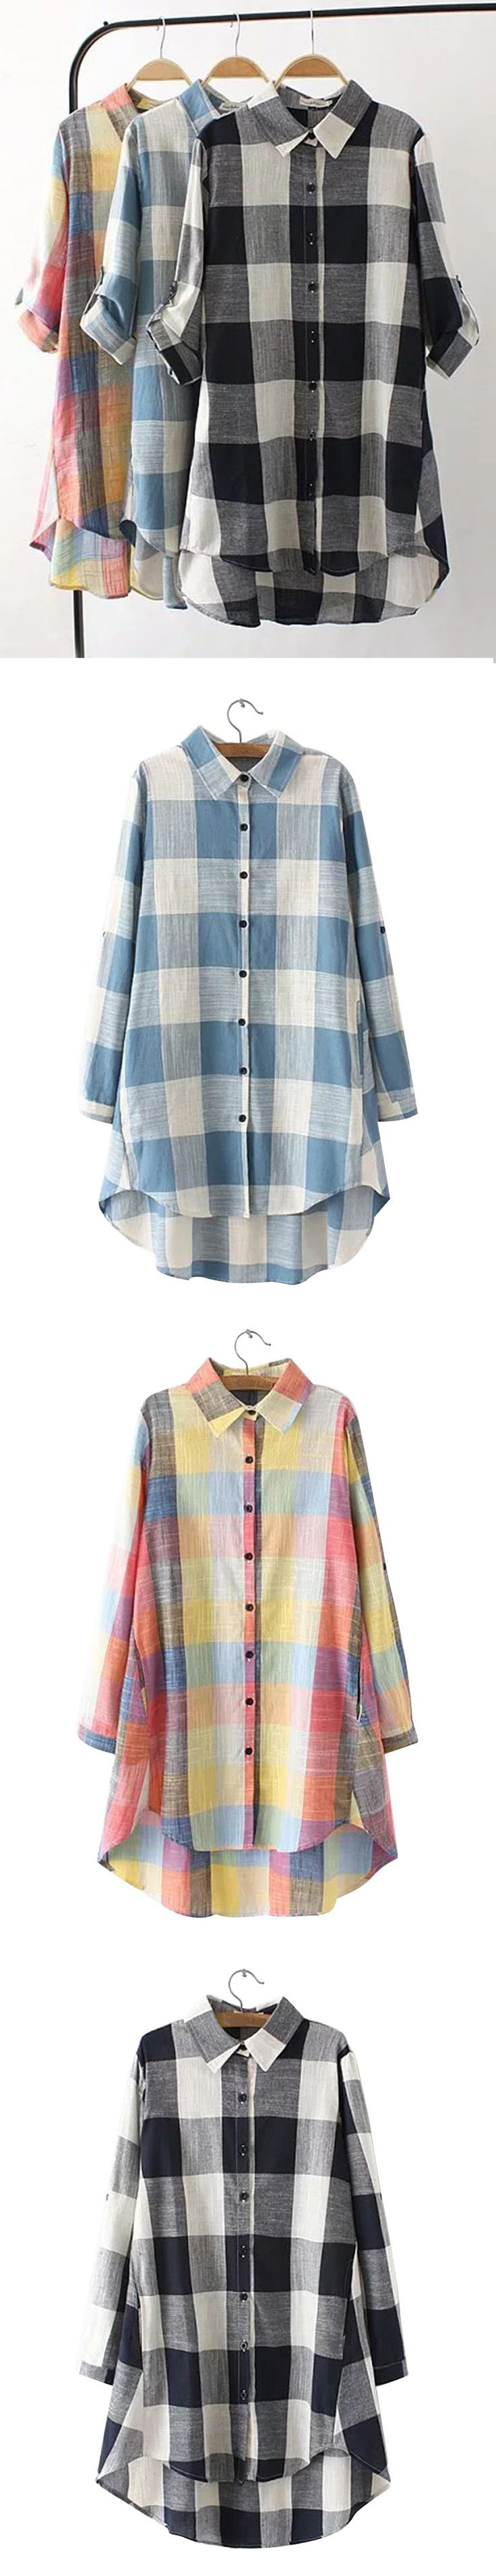 US$27.15 Loose Plaid Adjustable Sleeve Turn-Down Collar Blouse For Women